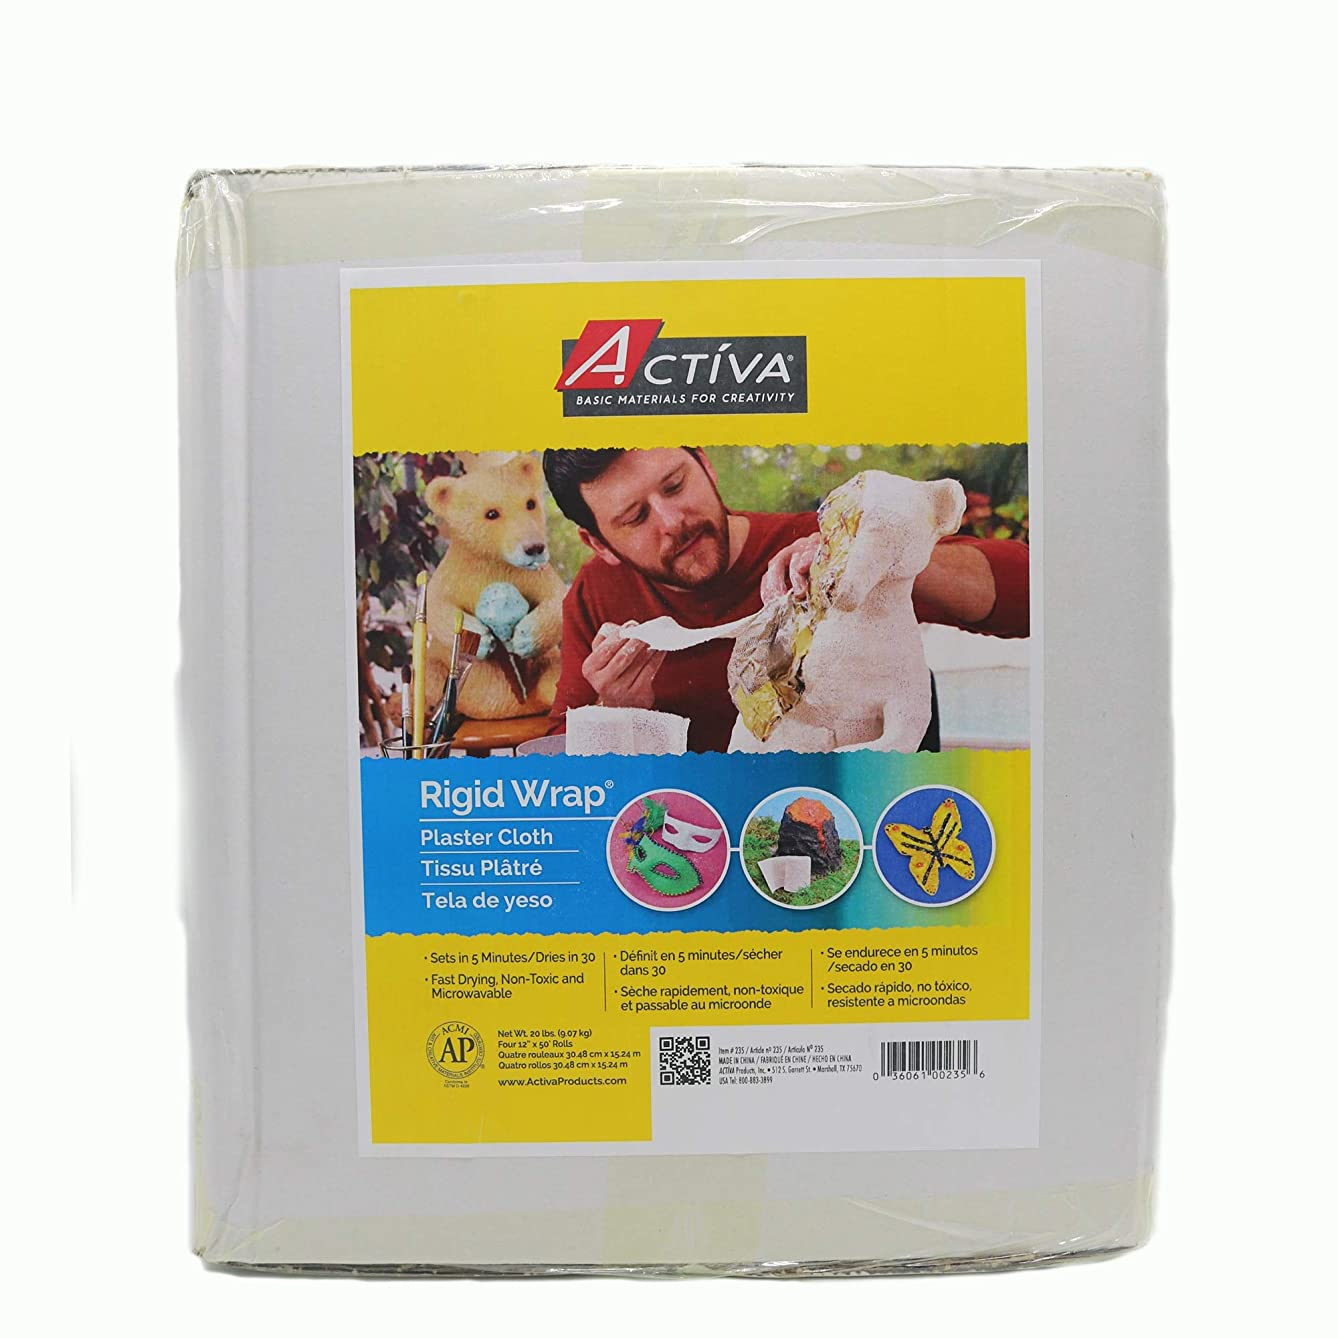 Activa Products Rigid Wrap Plaster Cloth for Arts and Crafts, 20-Pound